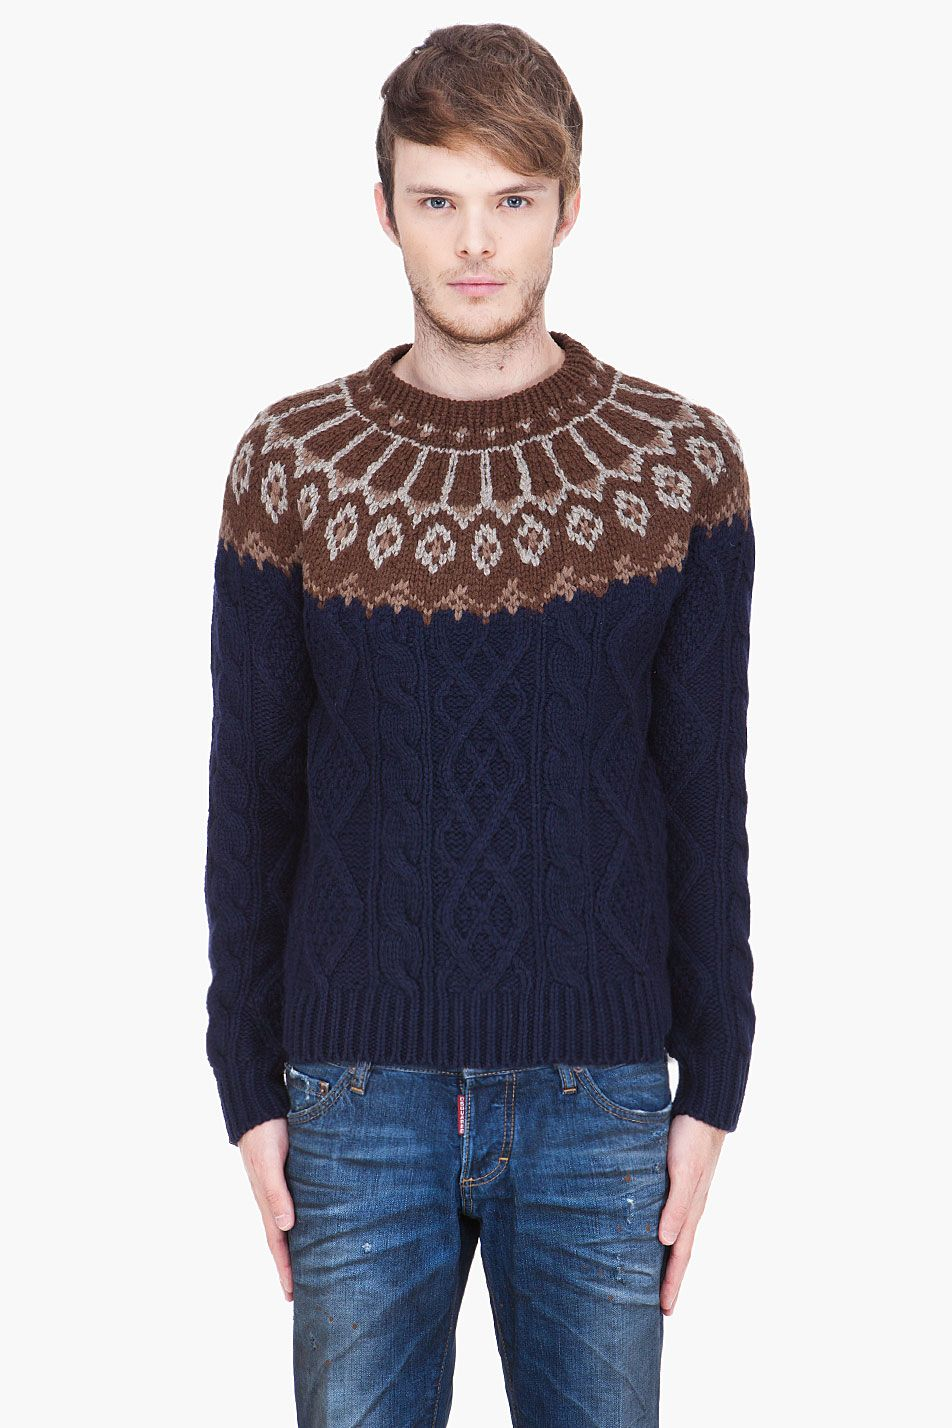 ea98f654ba Lopi sweater + Navy Gansey SASQUATCHFABRIX navy and brown Nordic Fisherman  Knit